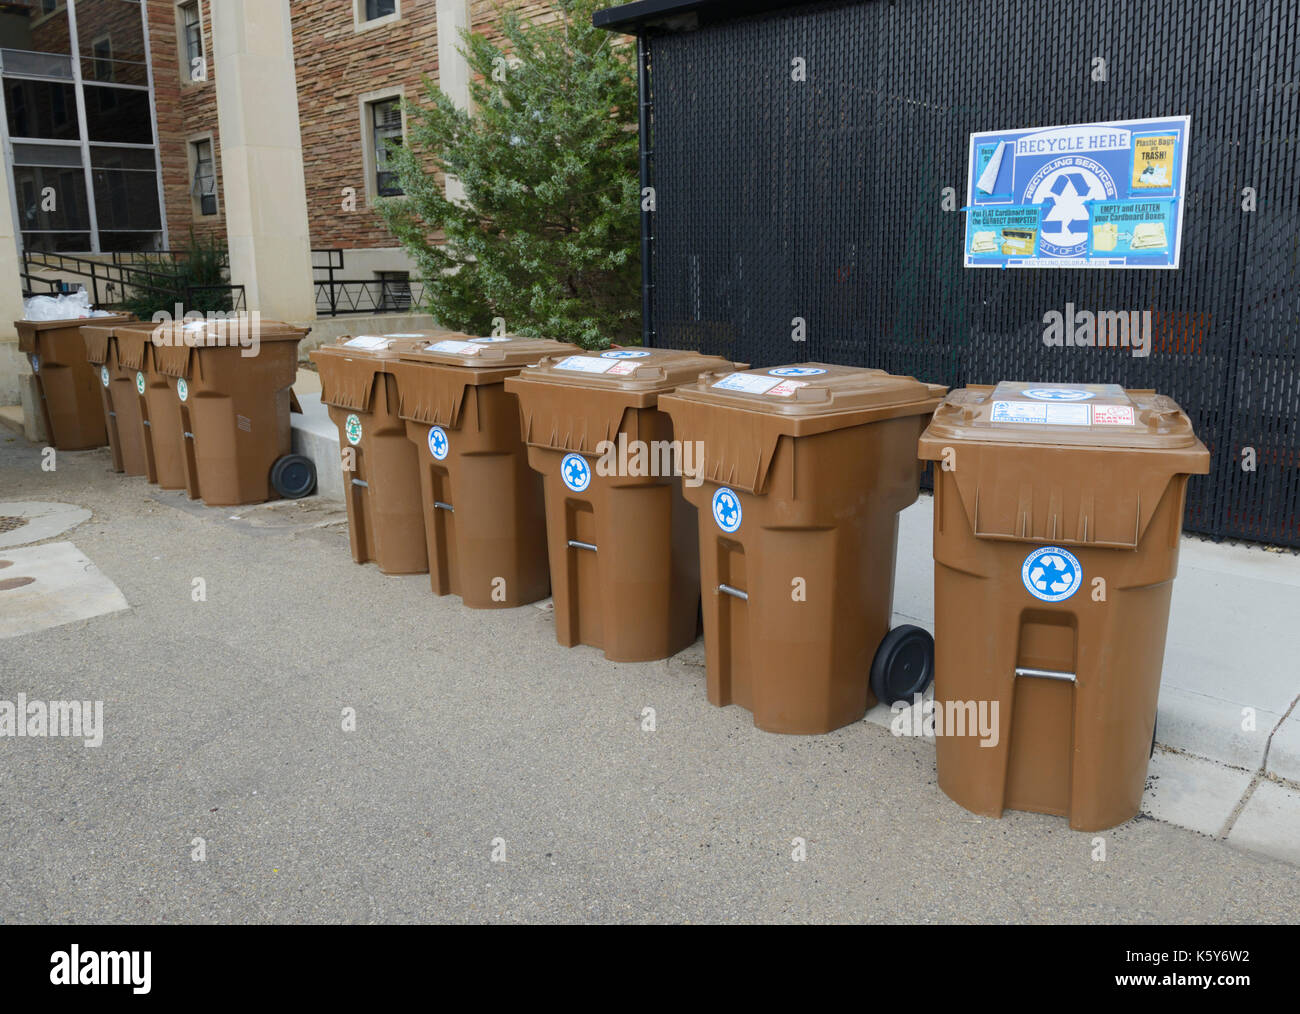 Recycle bins on a college campus, Boulder, CO Stock Photo